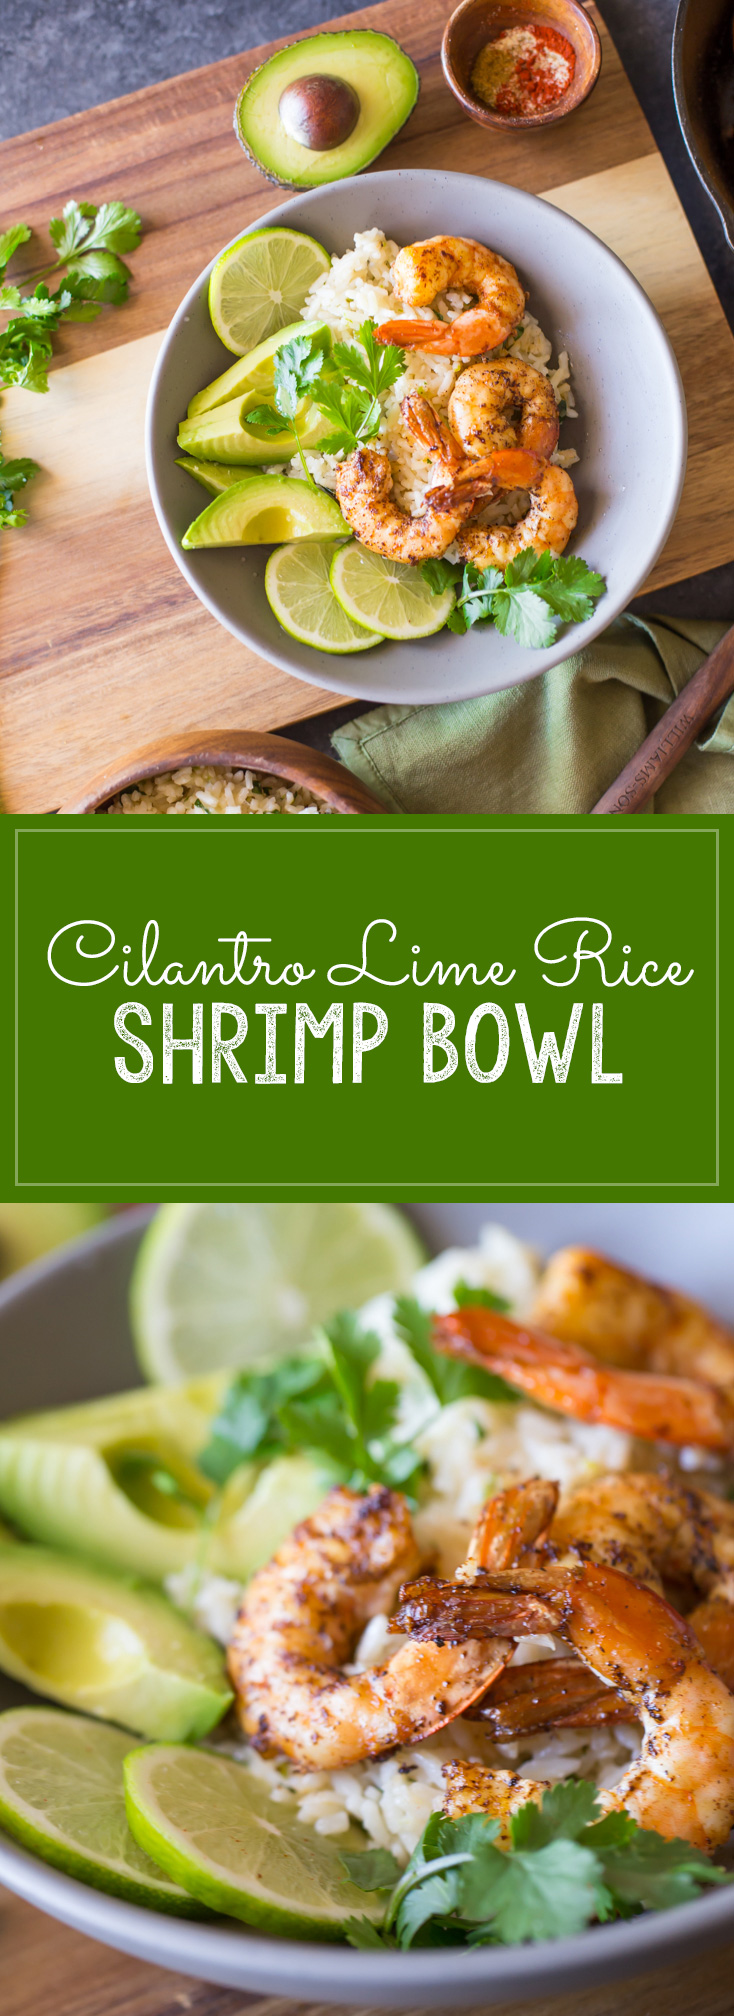 Cilantro Lime Rice Shrimp Bowl - Shrimp sautéd in a spiced butter served over a zesty cilantro lime rice. So easy and fresh!